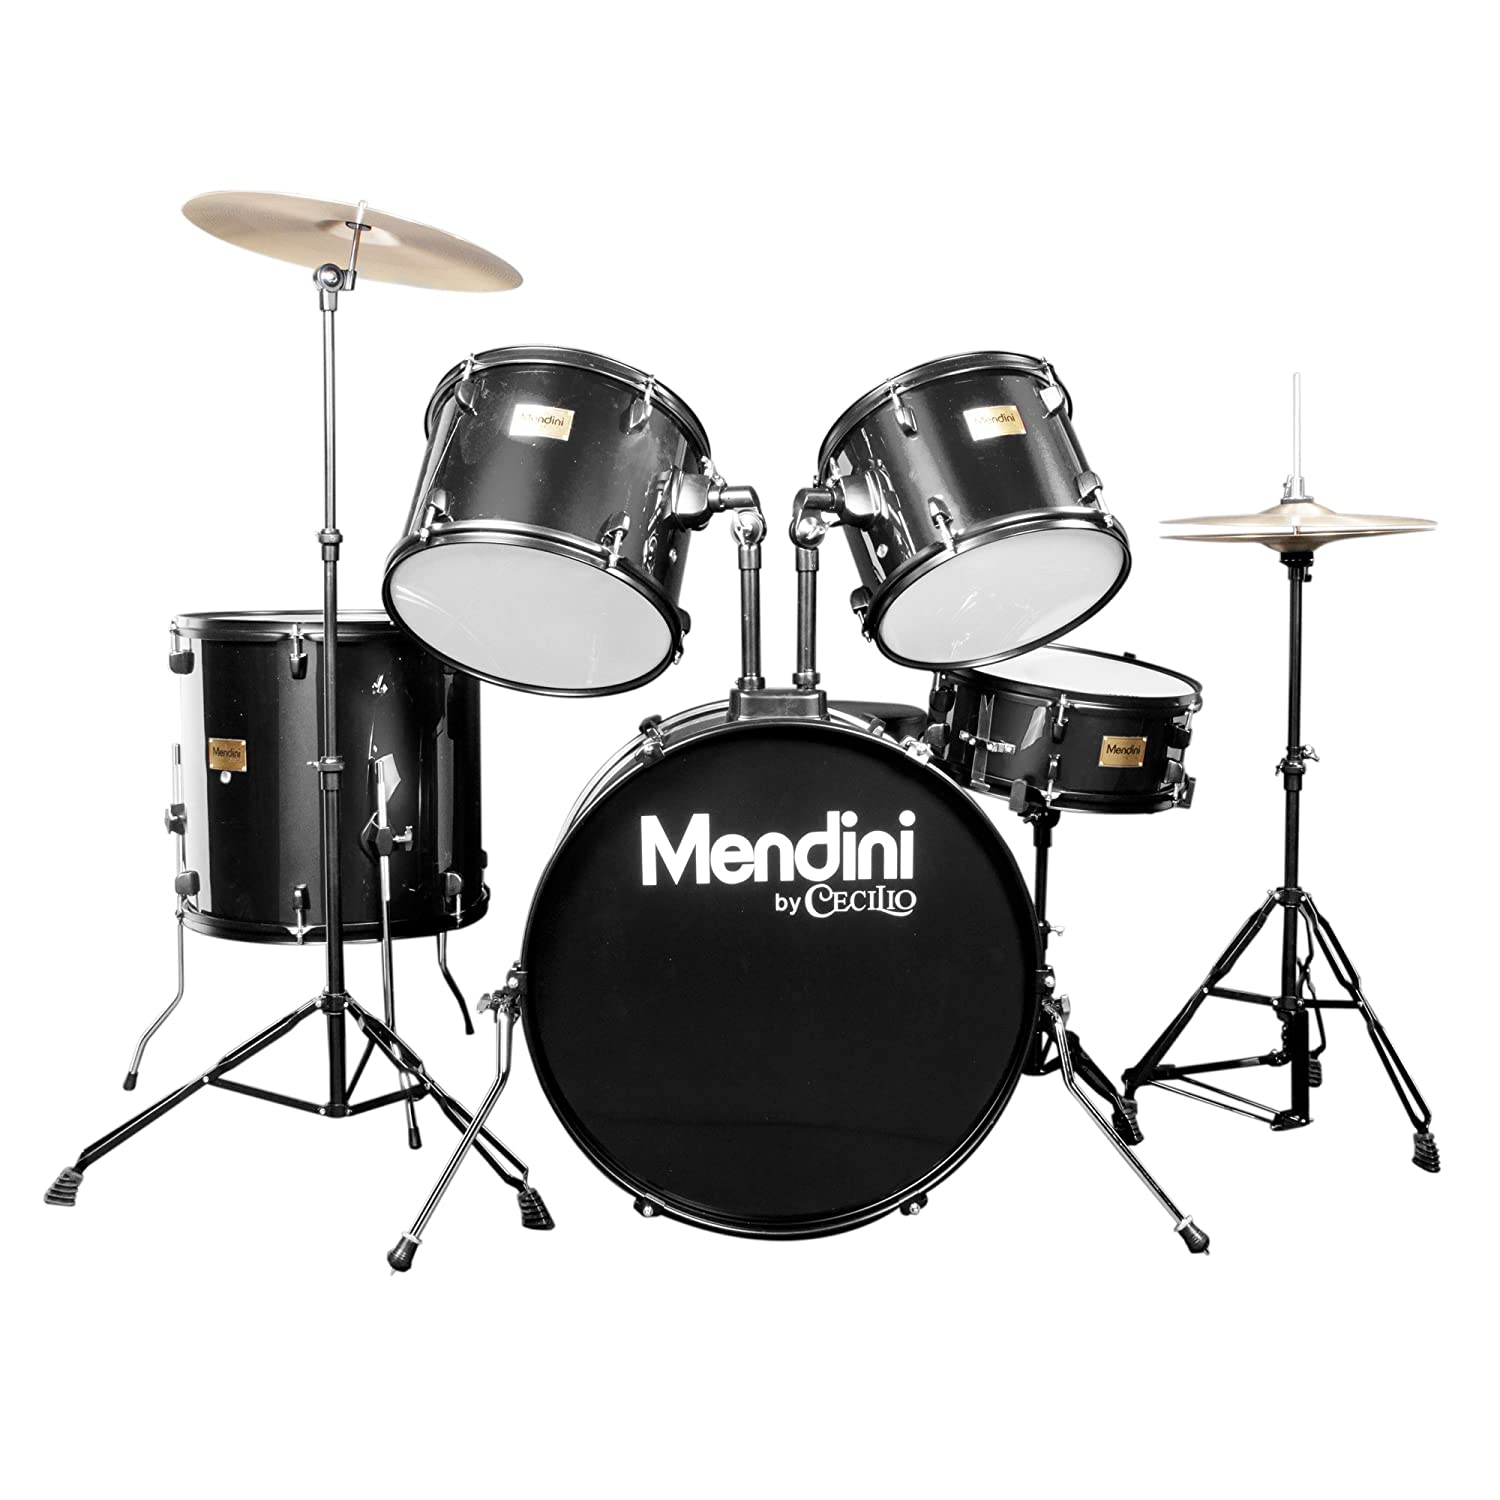 Mendini MDS80-BK 5-Piece Drum Kit